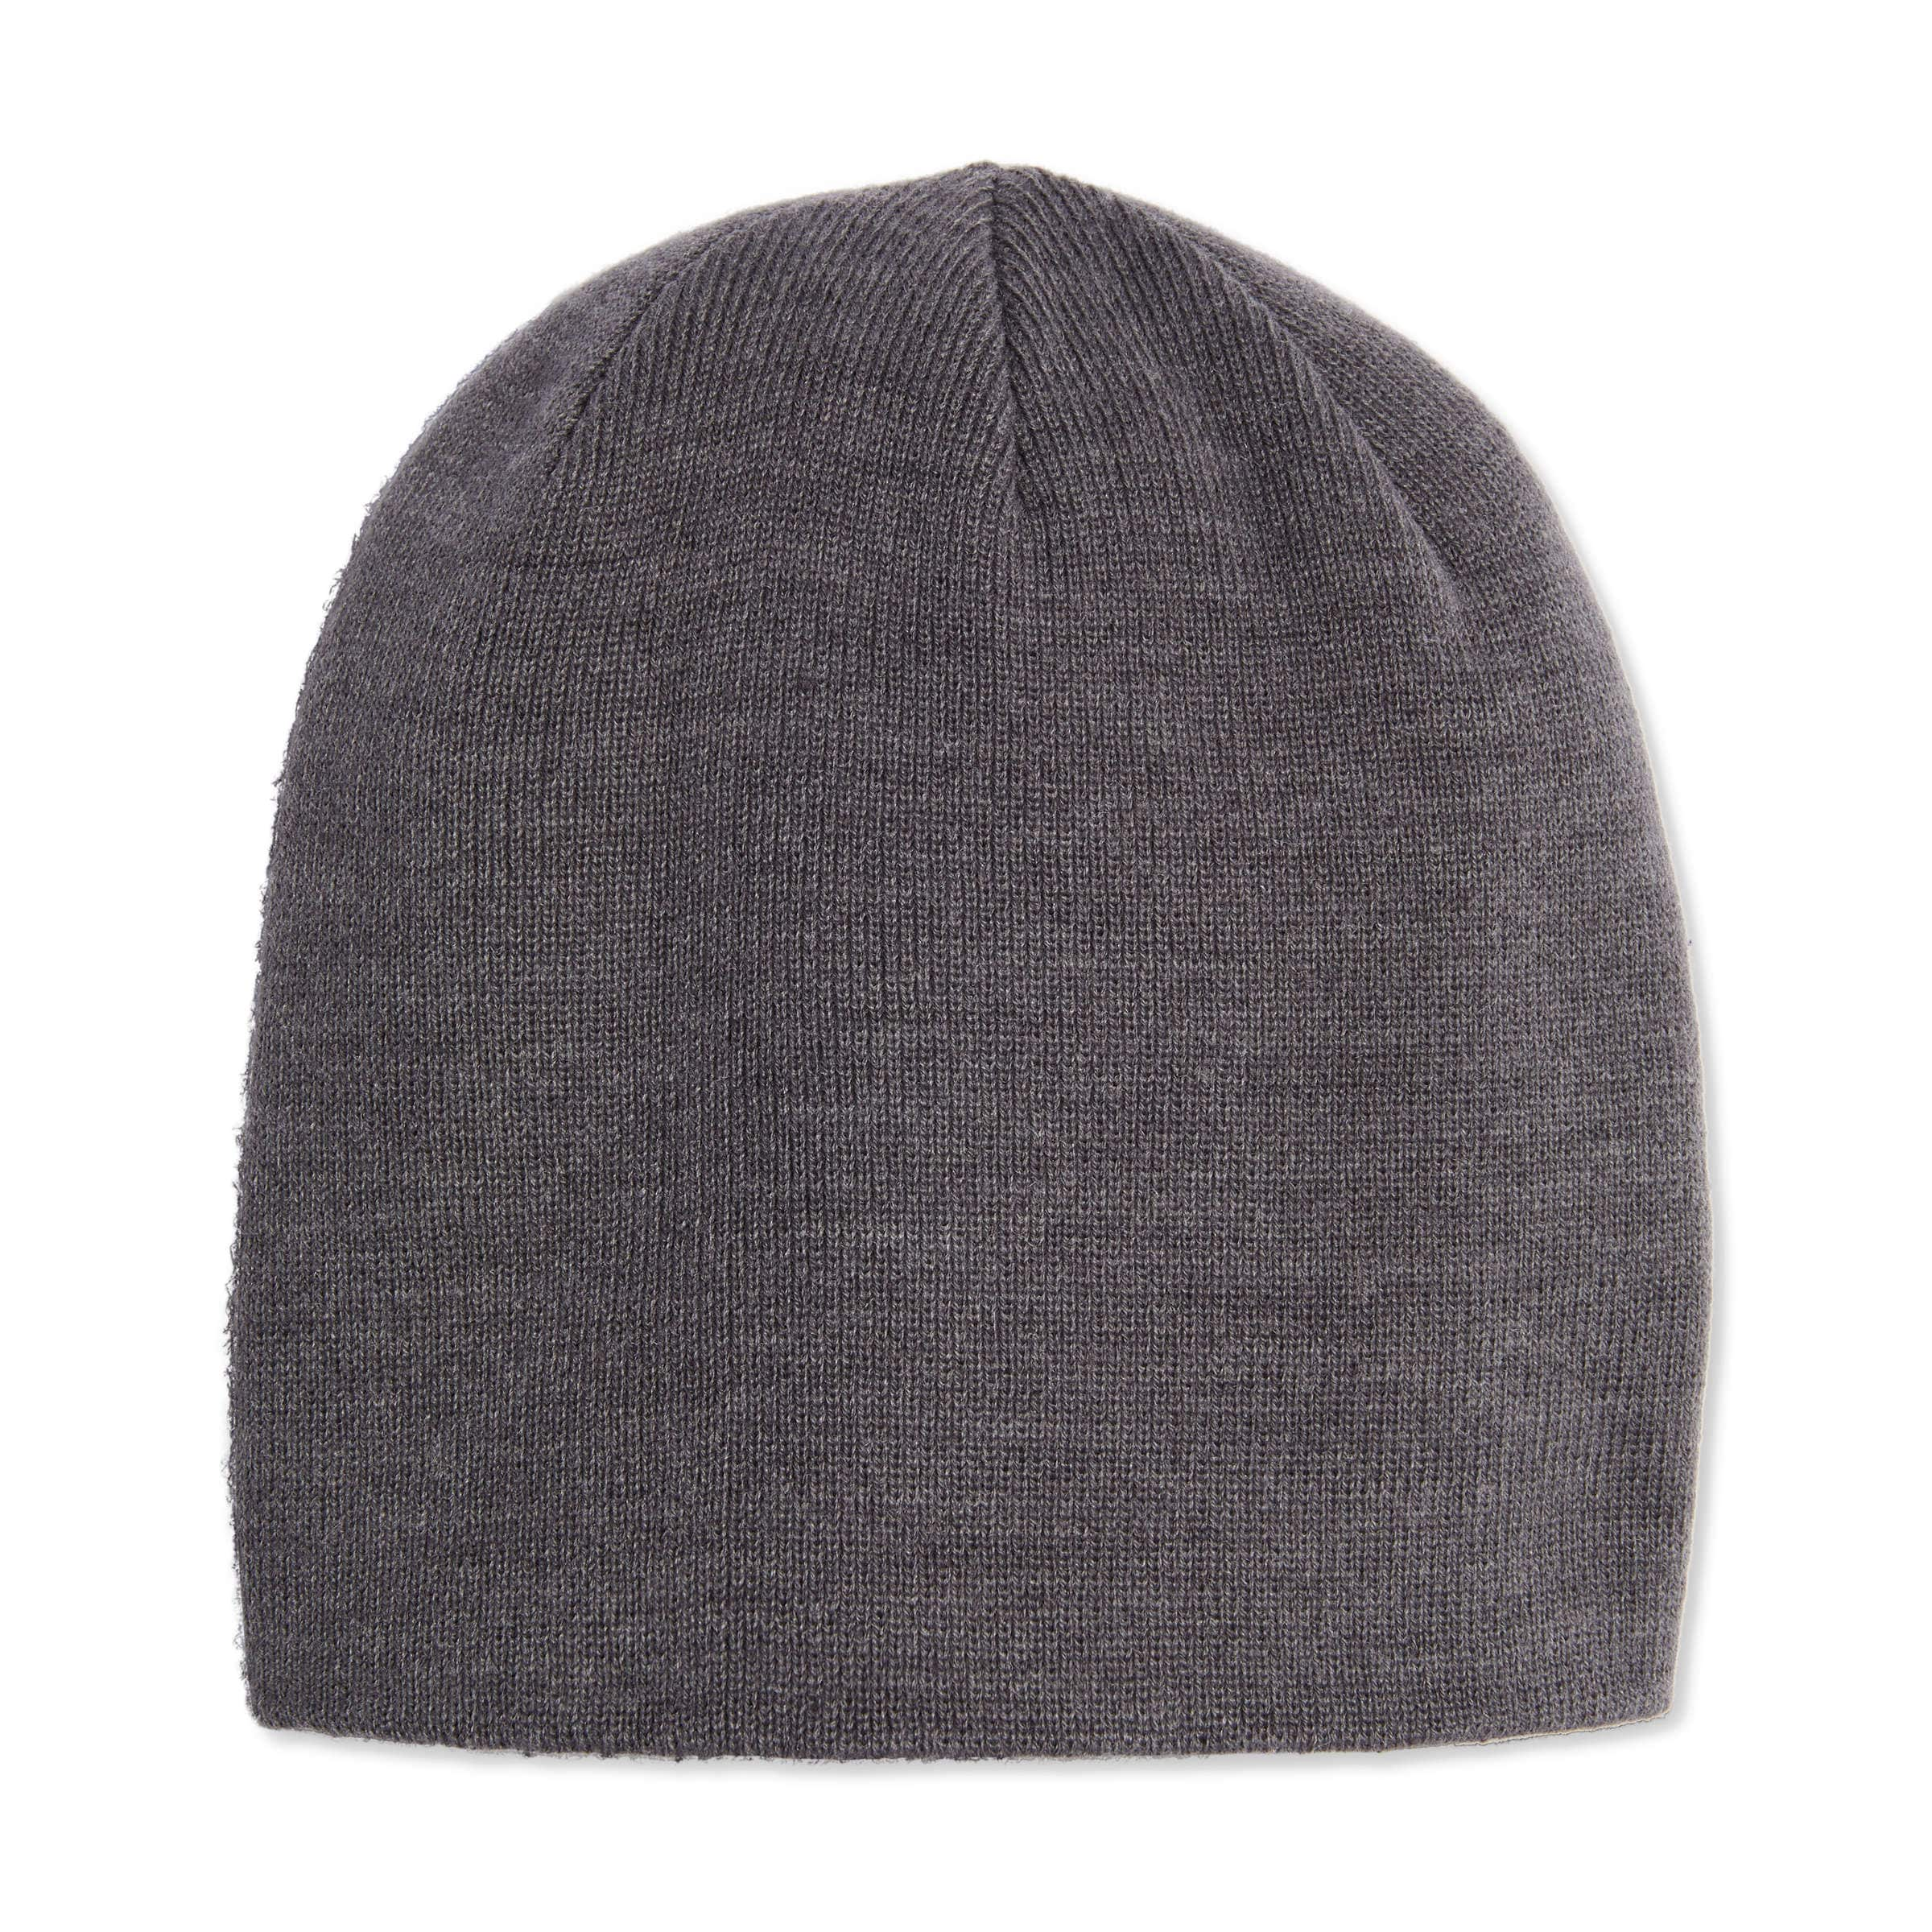 8b884073123 Men s Jersey Beanie in Dark Blue Mix from Joe Fresh